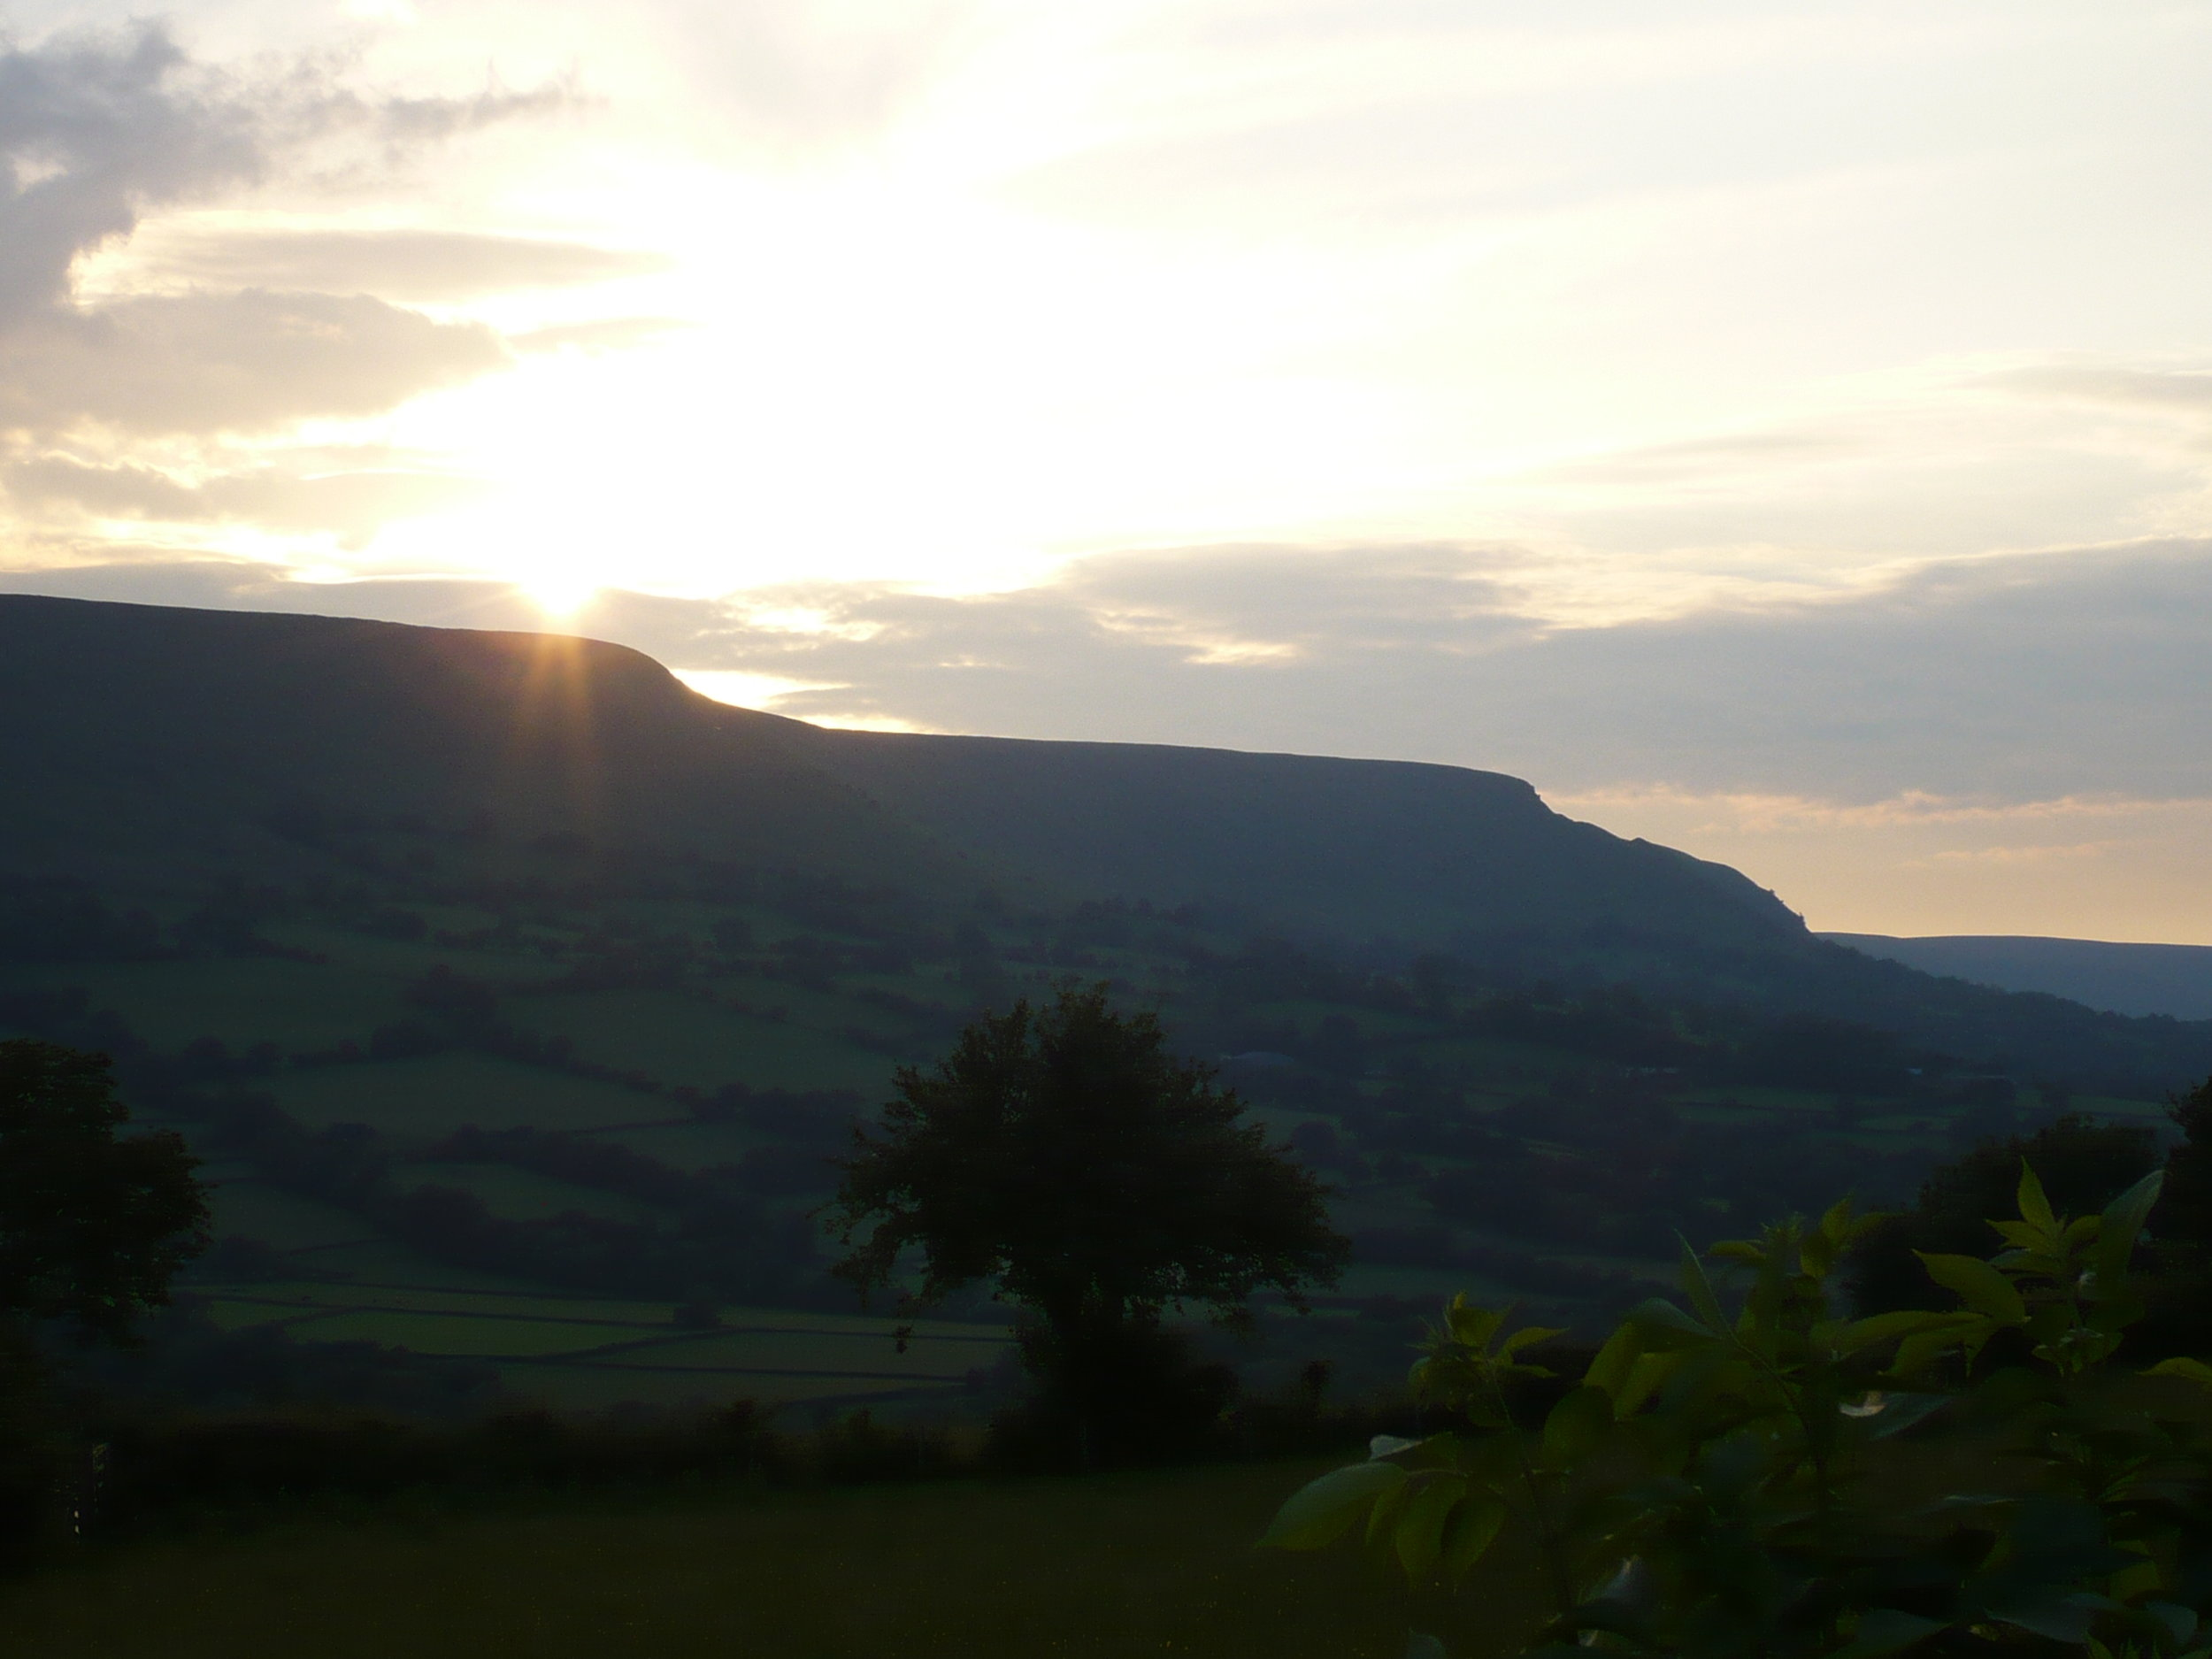 Sunsetting over Hatterall Hill (2008)